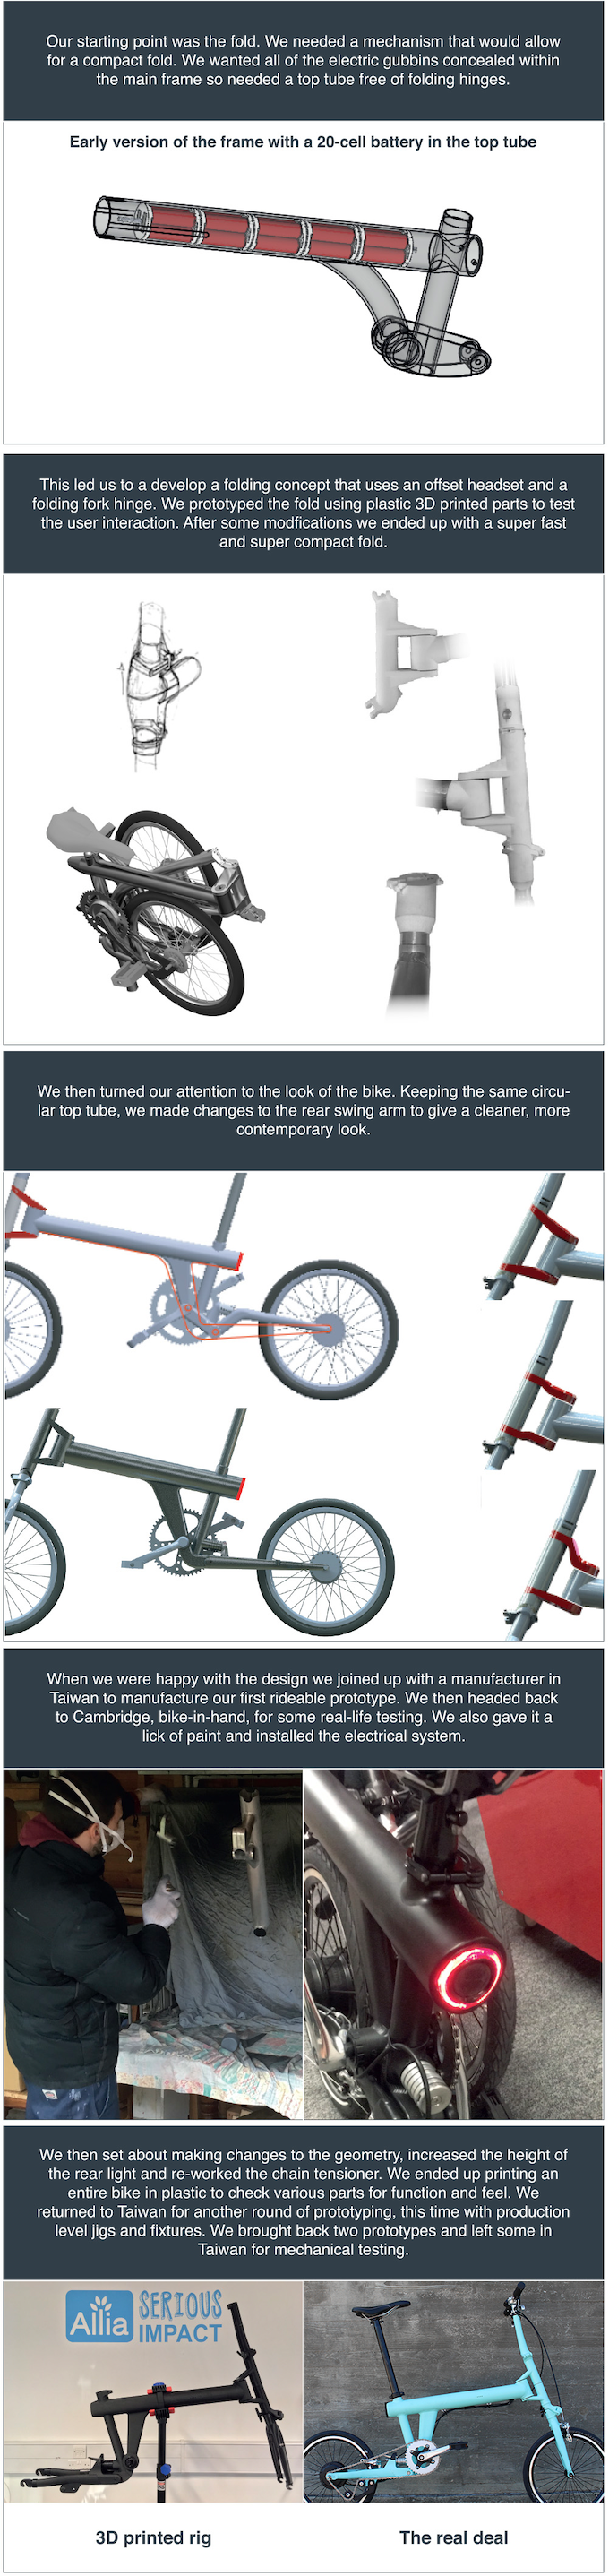 FLIT-16: a brand new generation of folding ebike by FLIT